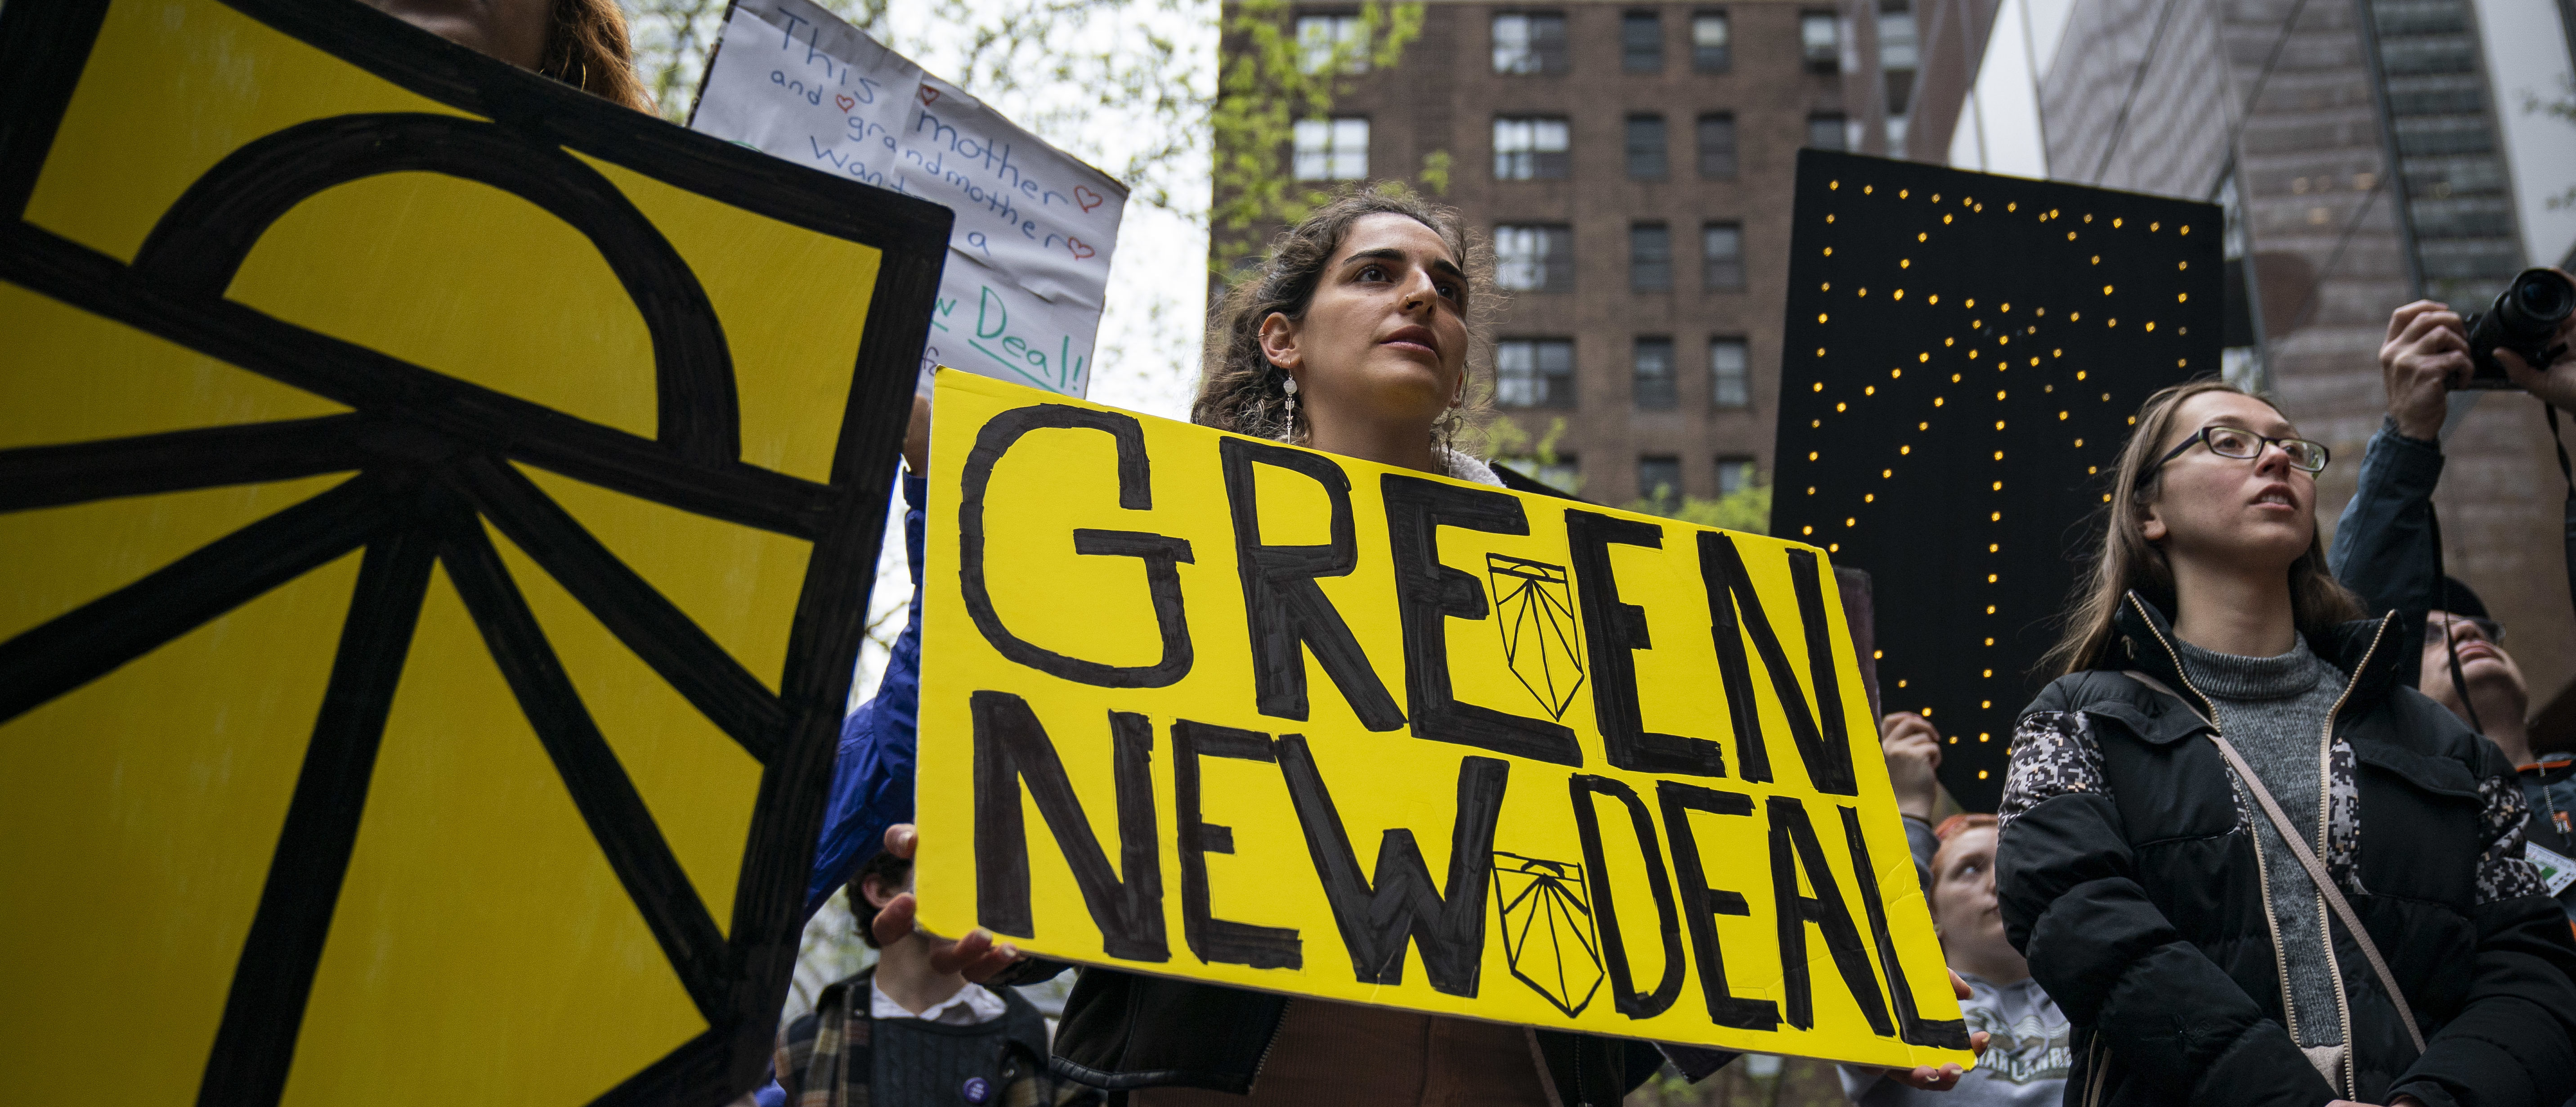 "Activists rally in support of proposed ""Green New Deal"" legislation outside of Senate Minority Leader Chuck Schumer's New York City office, April 30, 2019 in New York City. (Photo by Drew Angerer/Getty Images)"